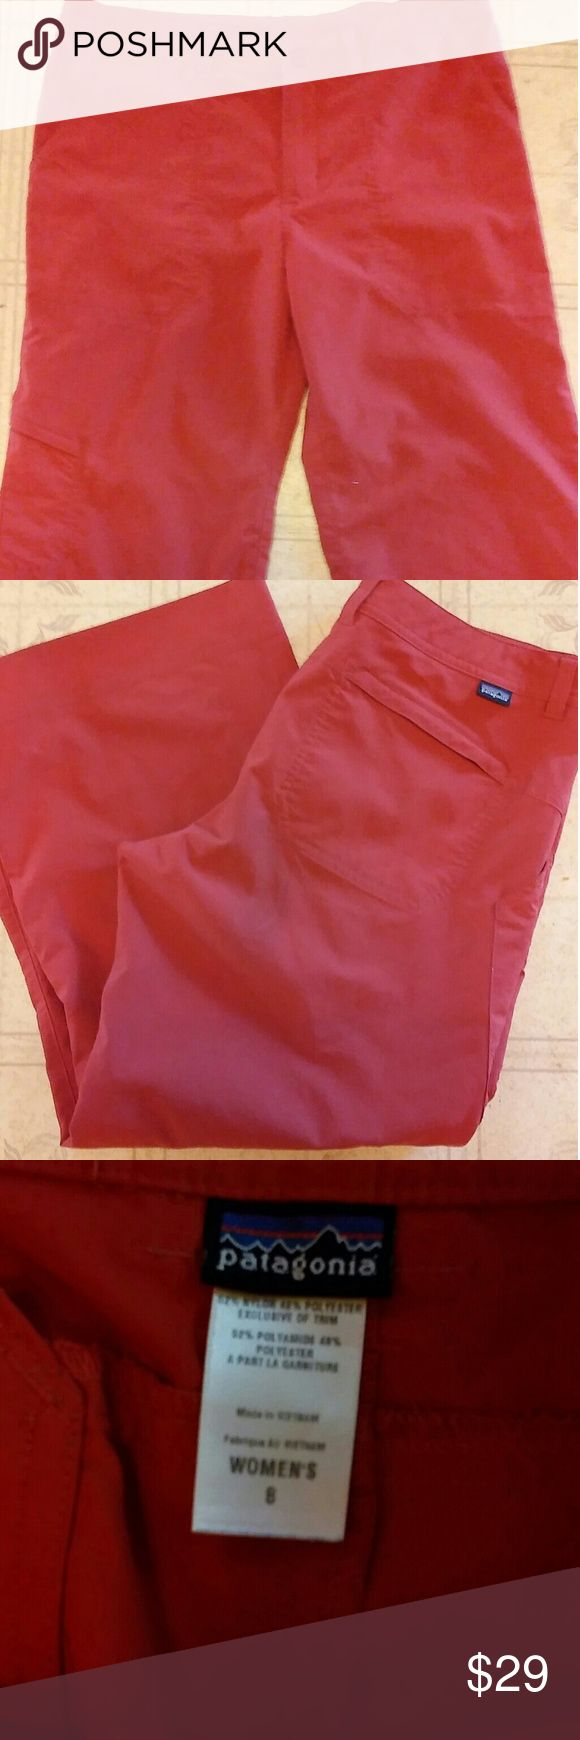 Patagonia capris Coral/rust colored lightweight capris..excellent condition size 8 Patagonia Pants Capris